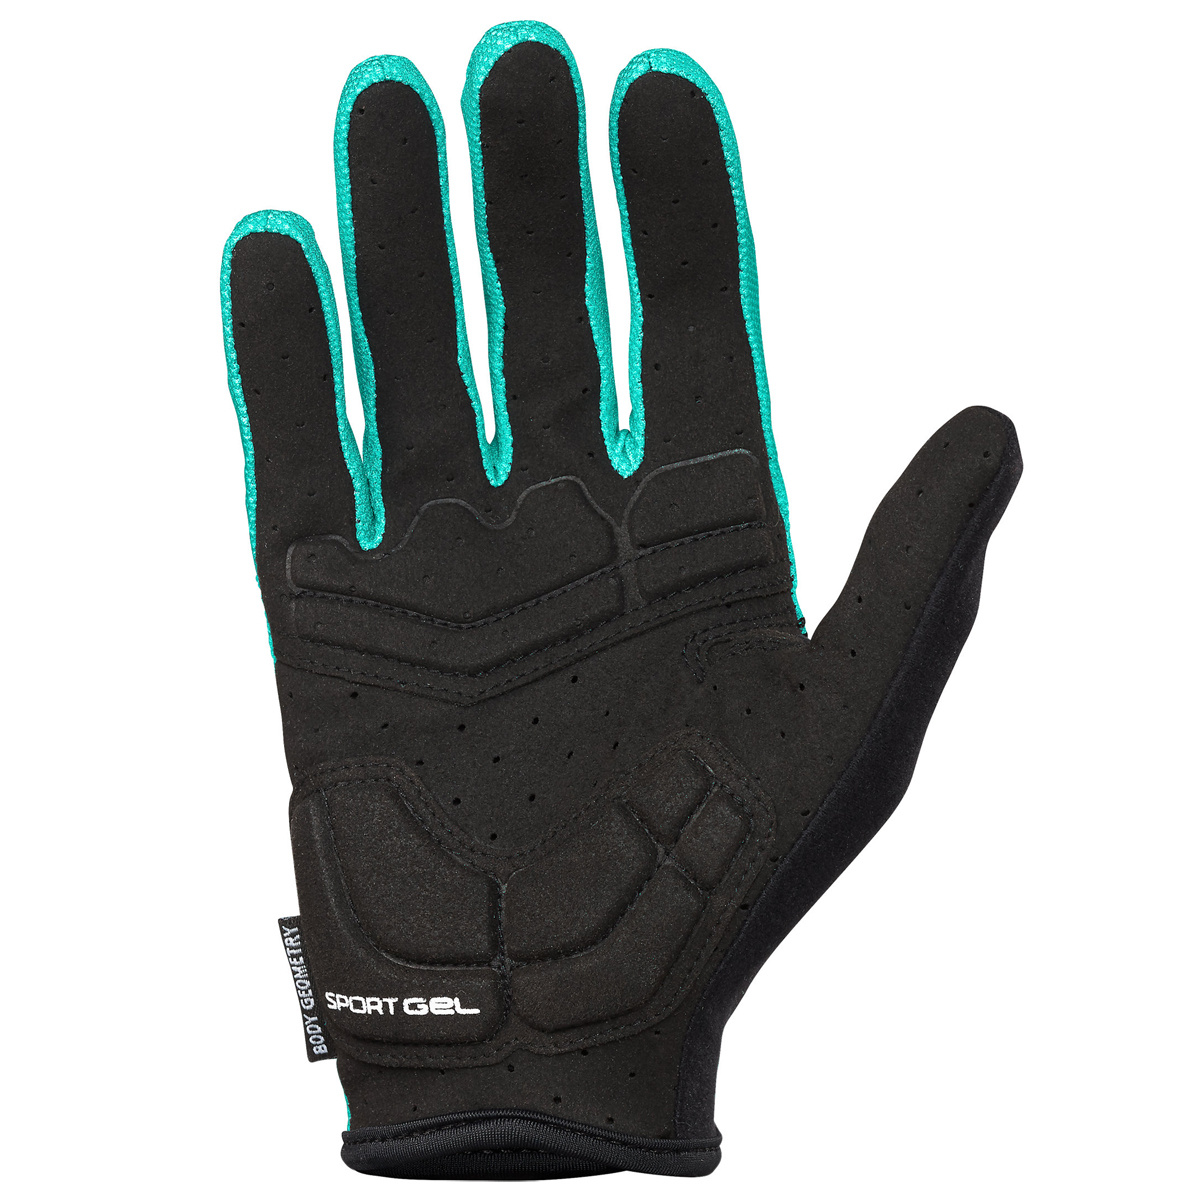 Specialized Specialized BG Sport Gel Glove, Women's